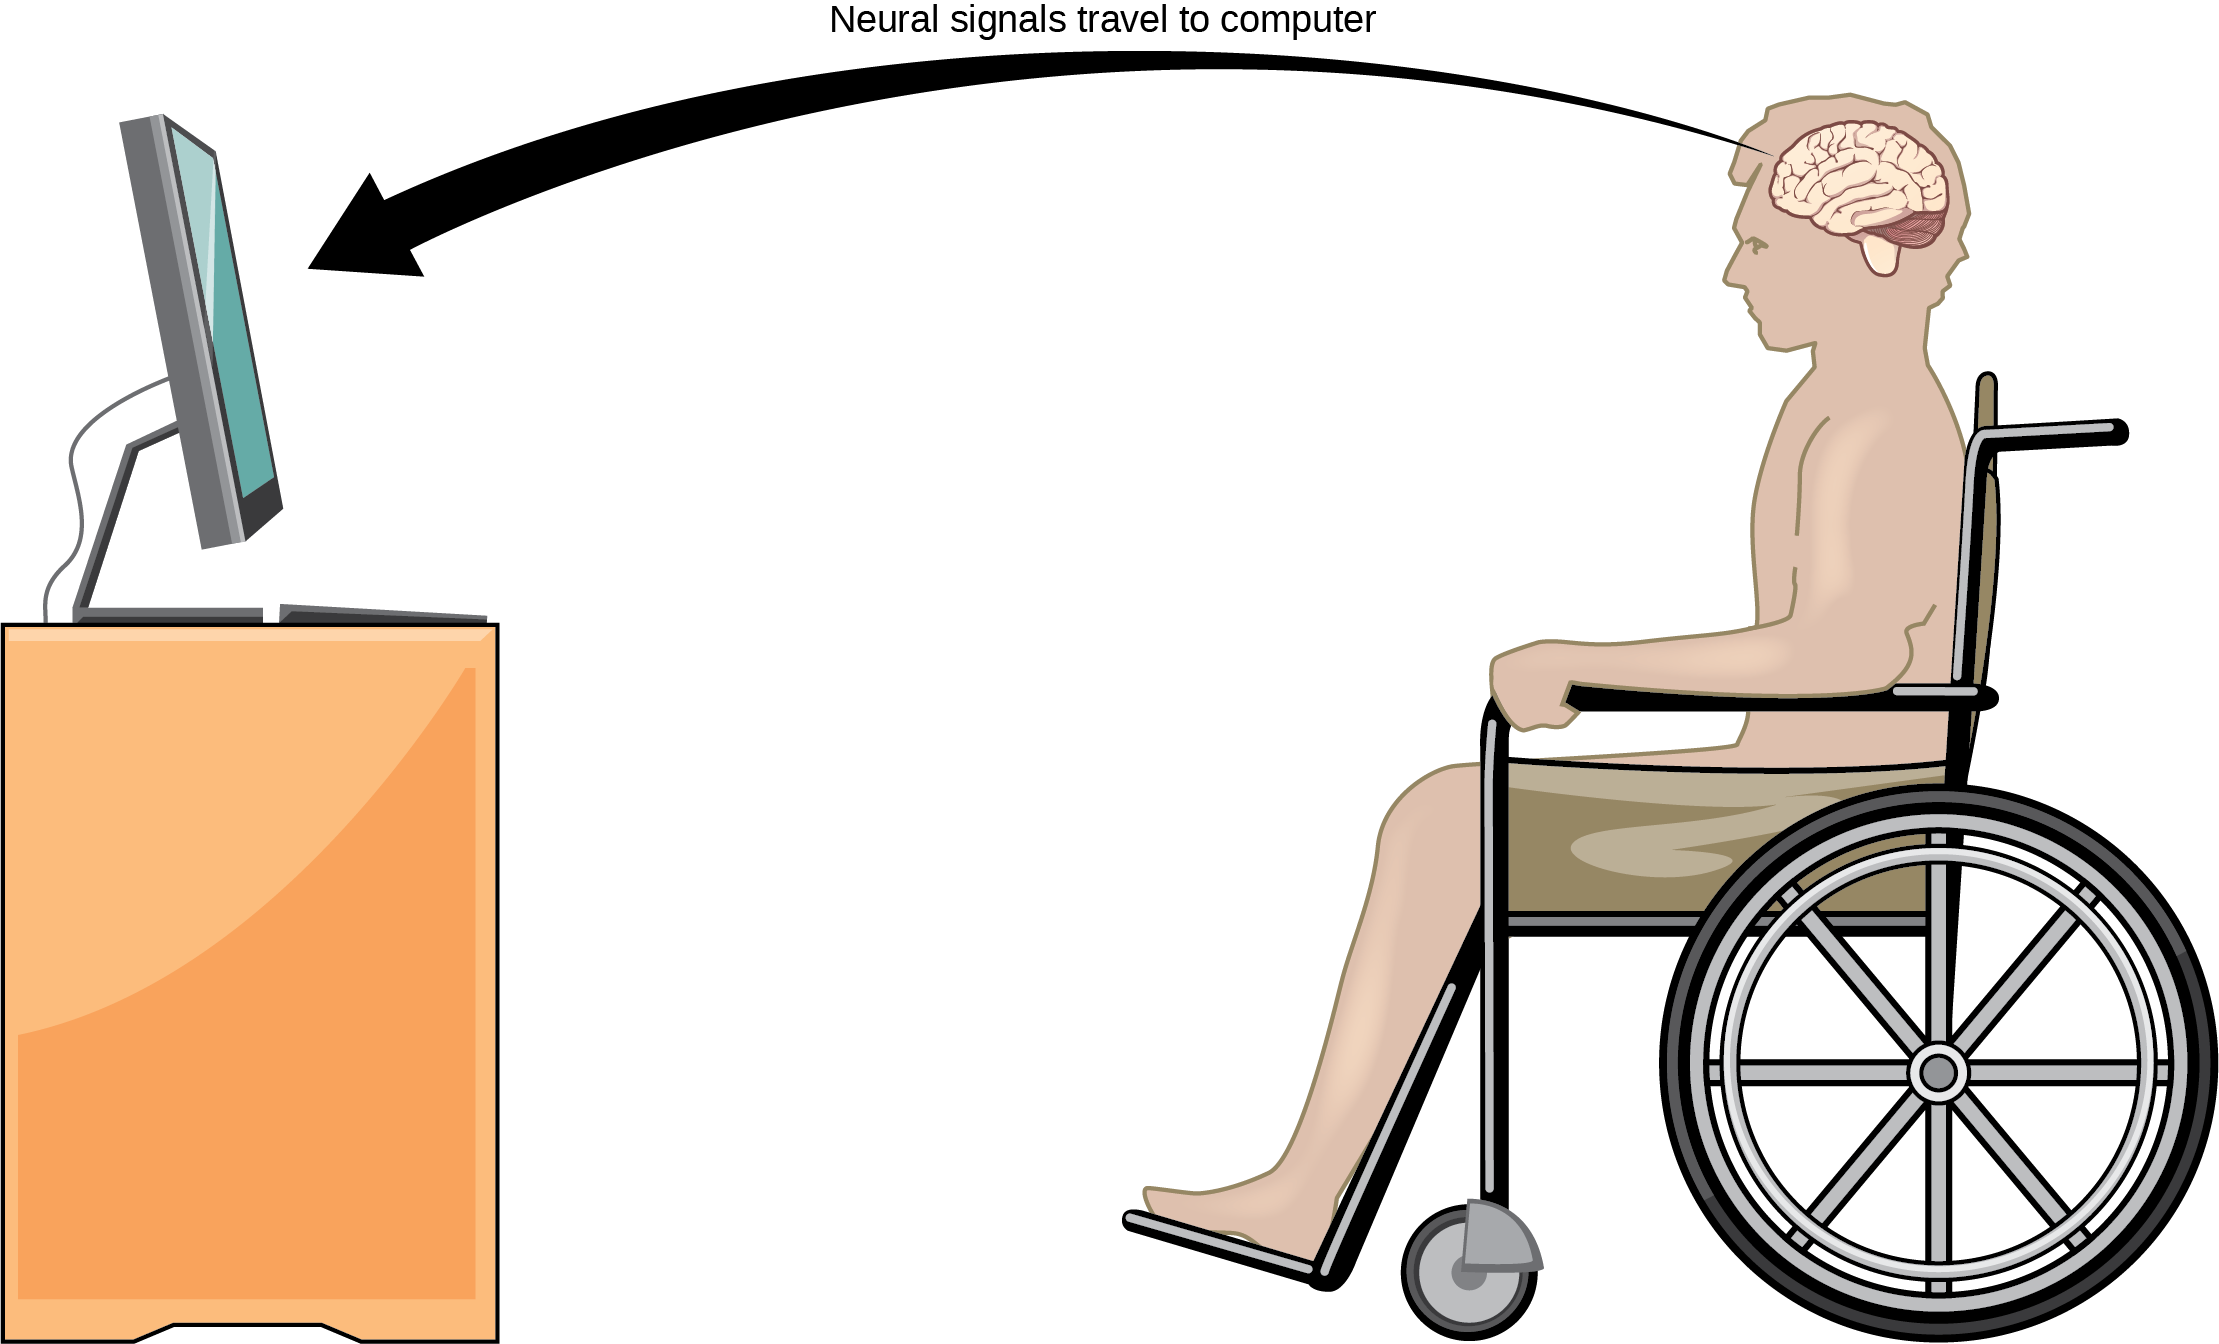 Illustration shows a person in a wheelchair, facing a computer screen. An arrow indicates that neural signals travel from the brain of the paralyzed person to the computer.